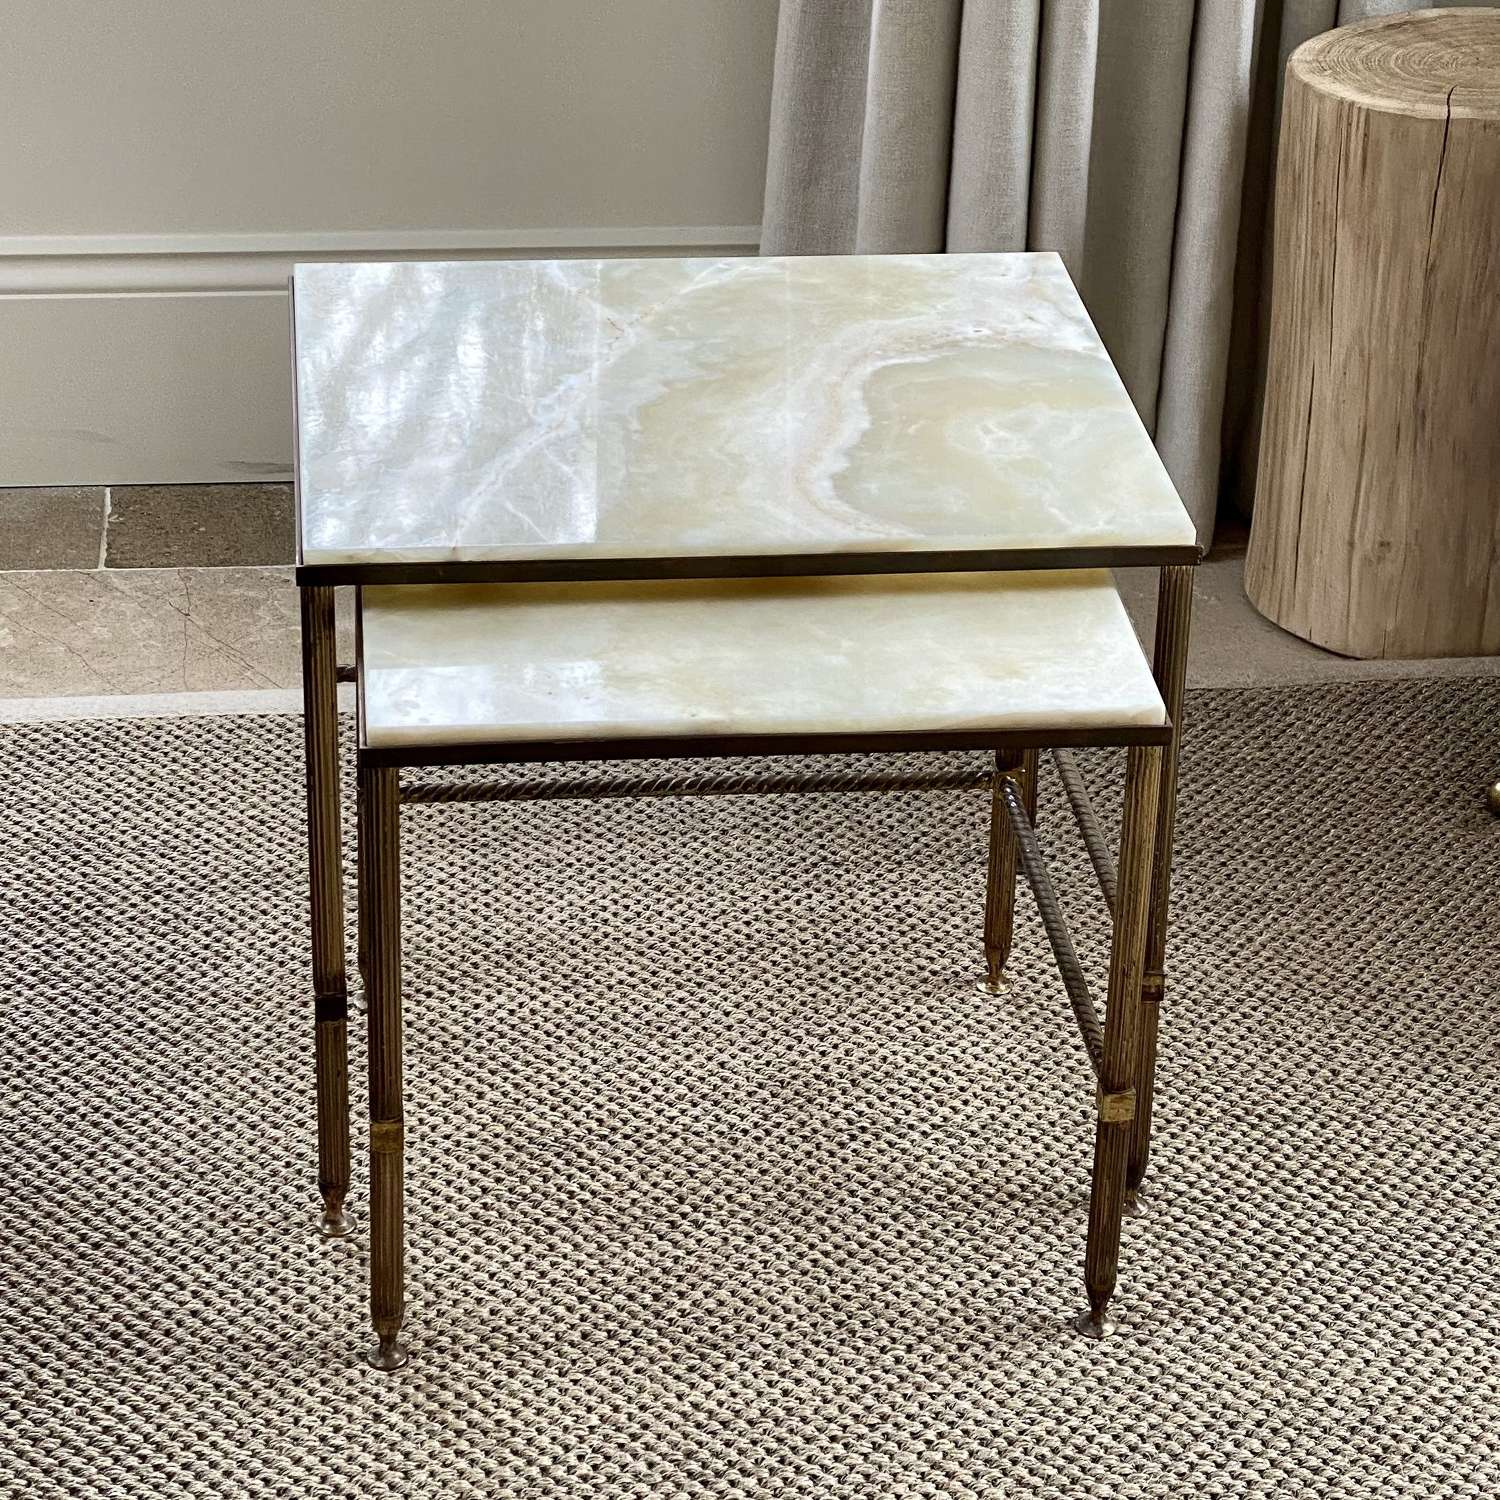 Superb quality onyx and brass side table nest